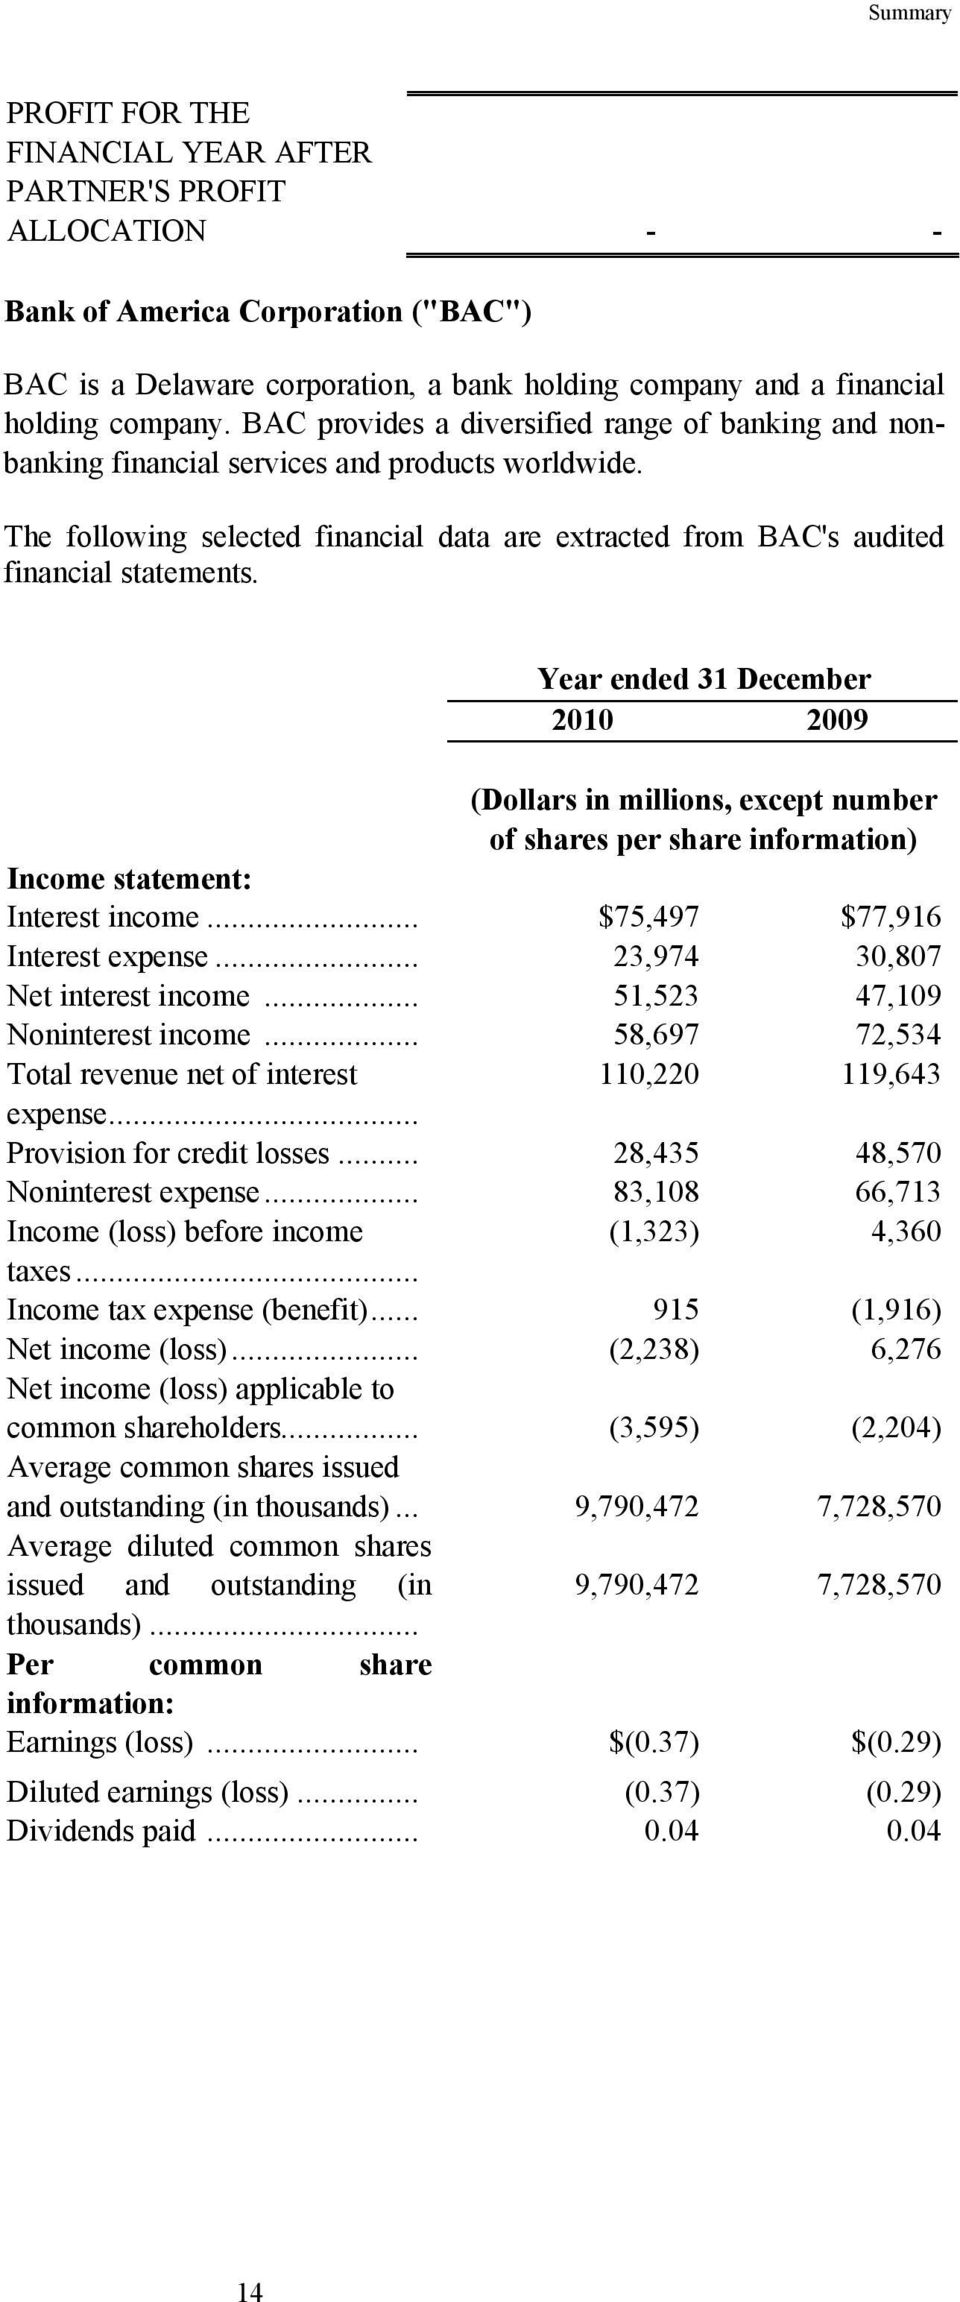 Year ended 31 December 2010 2009 (Dollars in millions, except number of shares per share information) Income statement: Interest income... $75,497 $77,916 Interest expense.